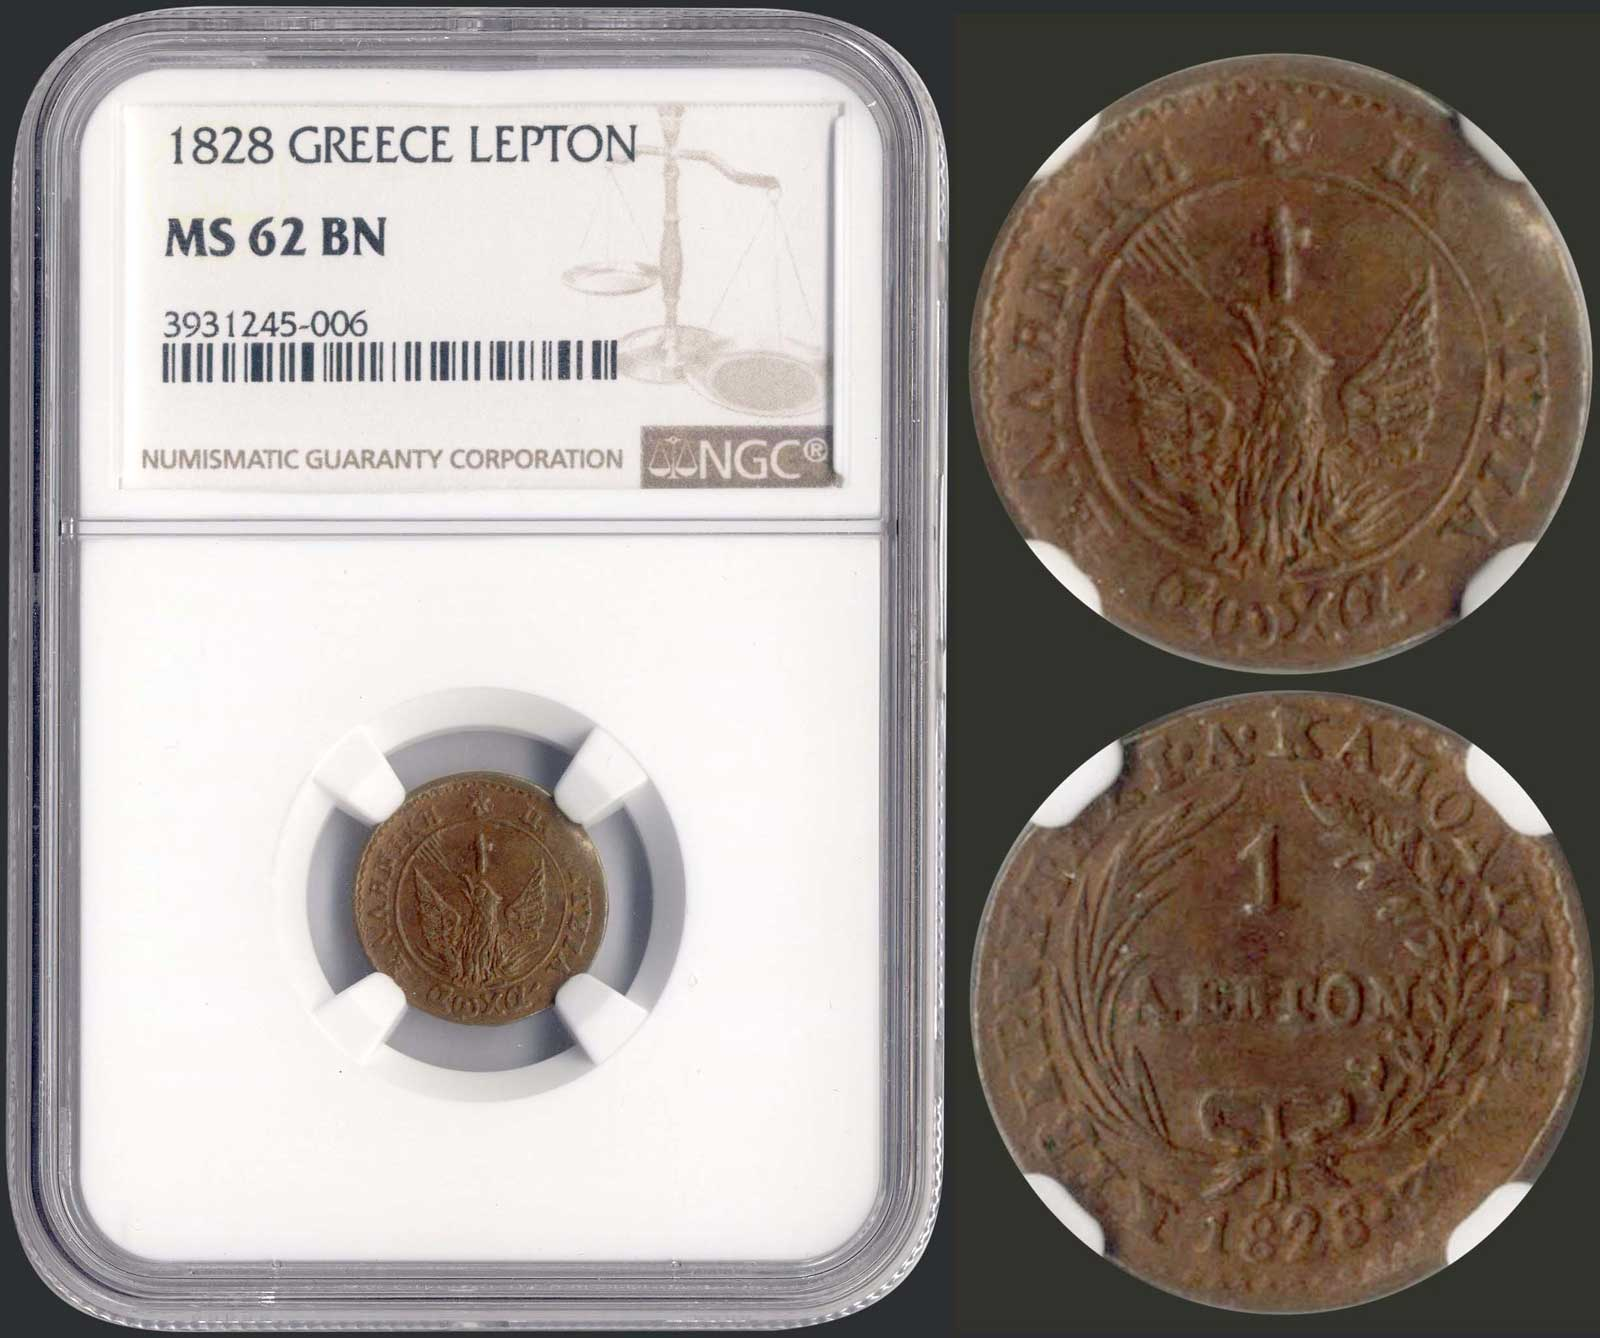 Lot 9003 - GREECE-  COINS & TOKENS governor capodistrias -  A. Karamitsos Public & LIVE Bid Auction 610 Coins, Medals & Banknotes